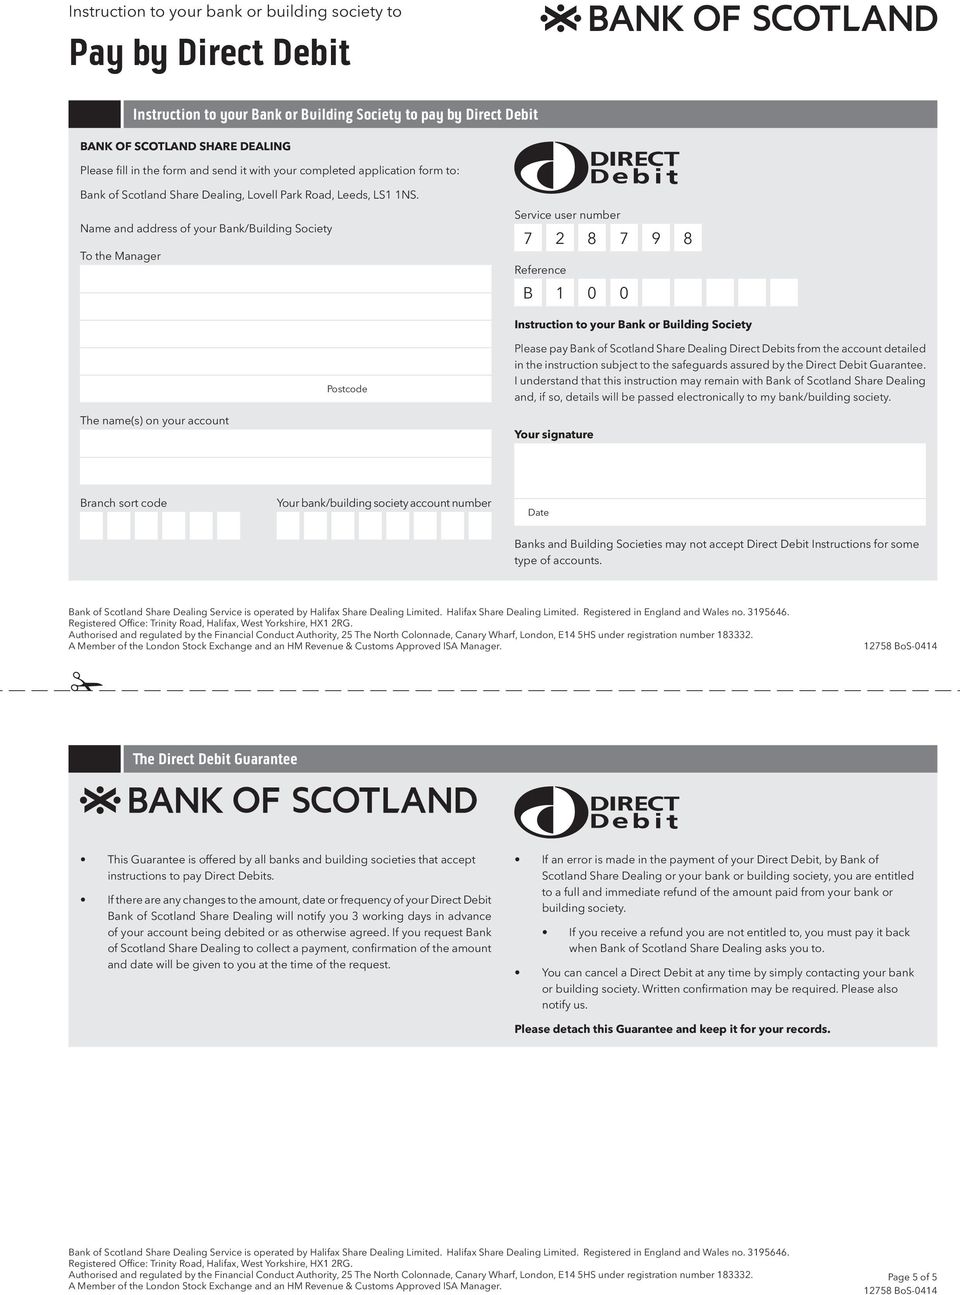 Name and address of your Bank/Building Society To the Manager Service user number 7 2 8 7 Reference B 1 0 0 9 8 Instruction to your Bank or Building Society Please pay Bank of Scotland Share Dealing